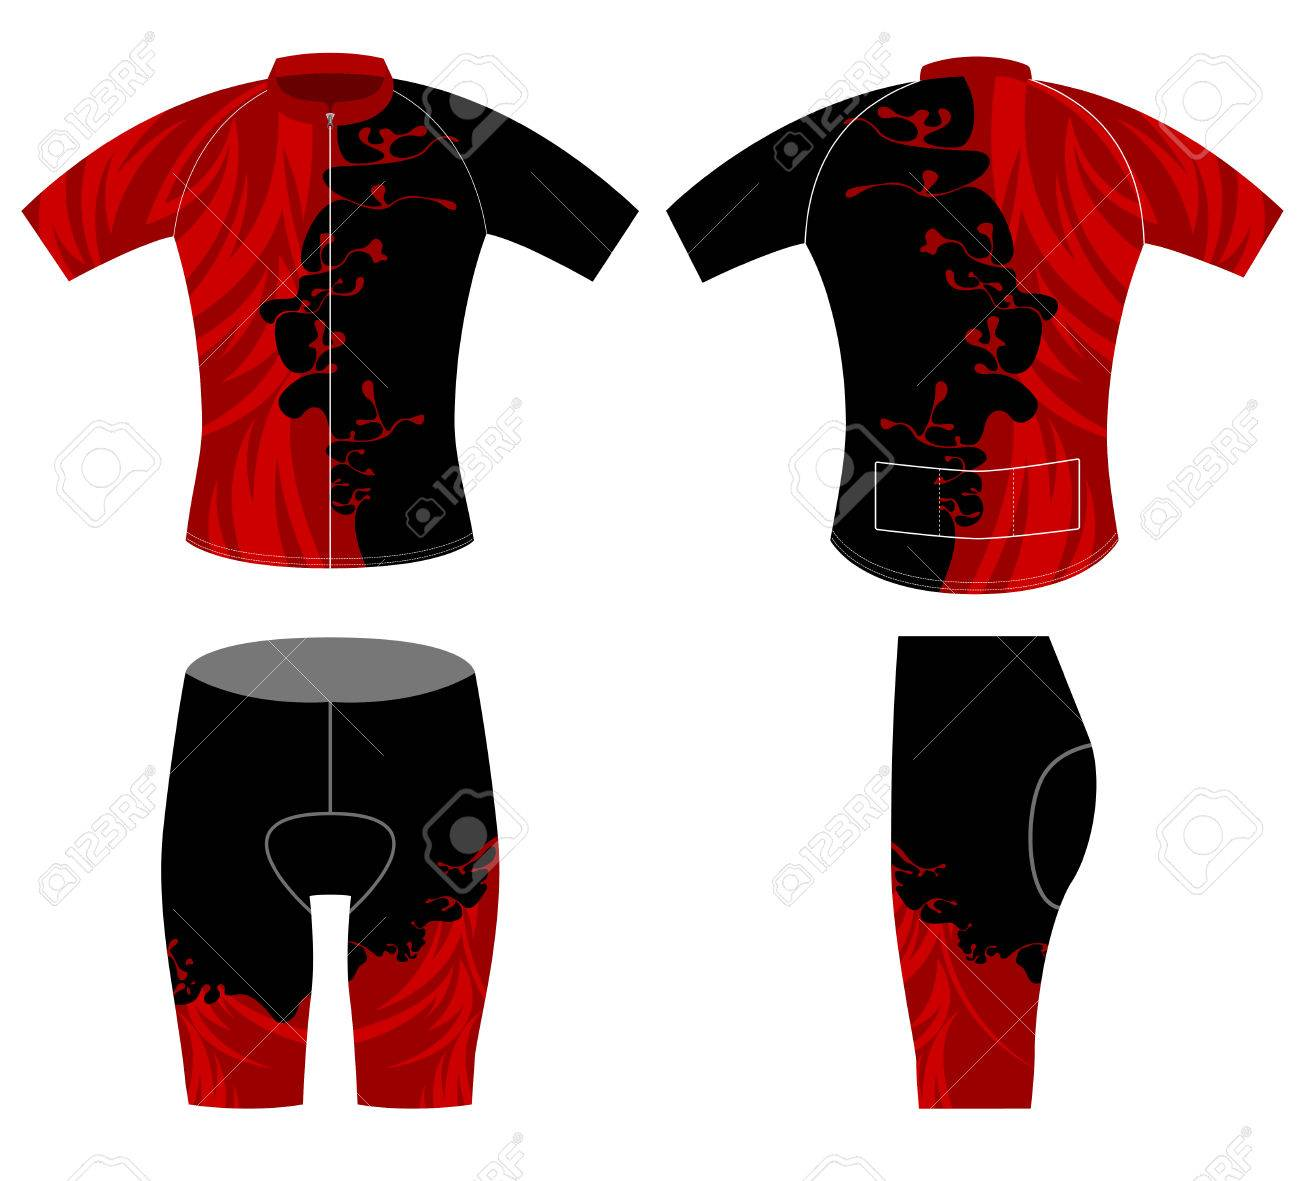 322f1b6f129e Red and black sports t-shirt vector design on a white background Stock  Vector -